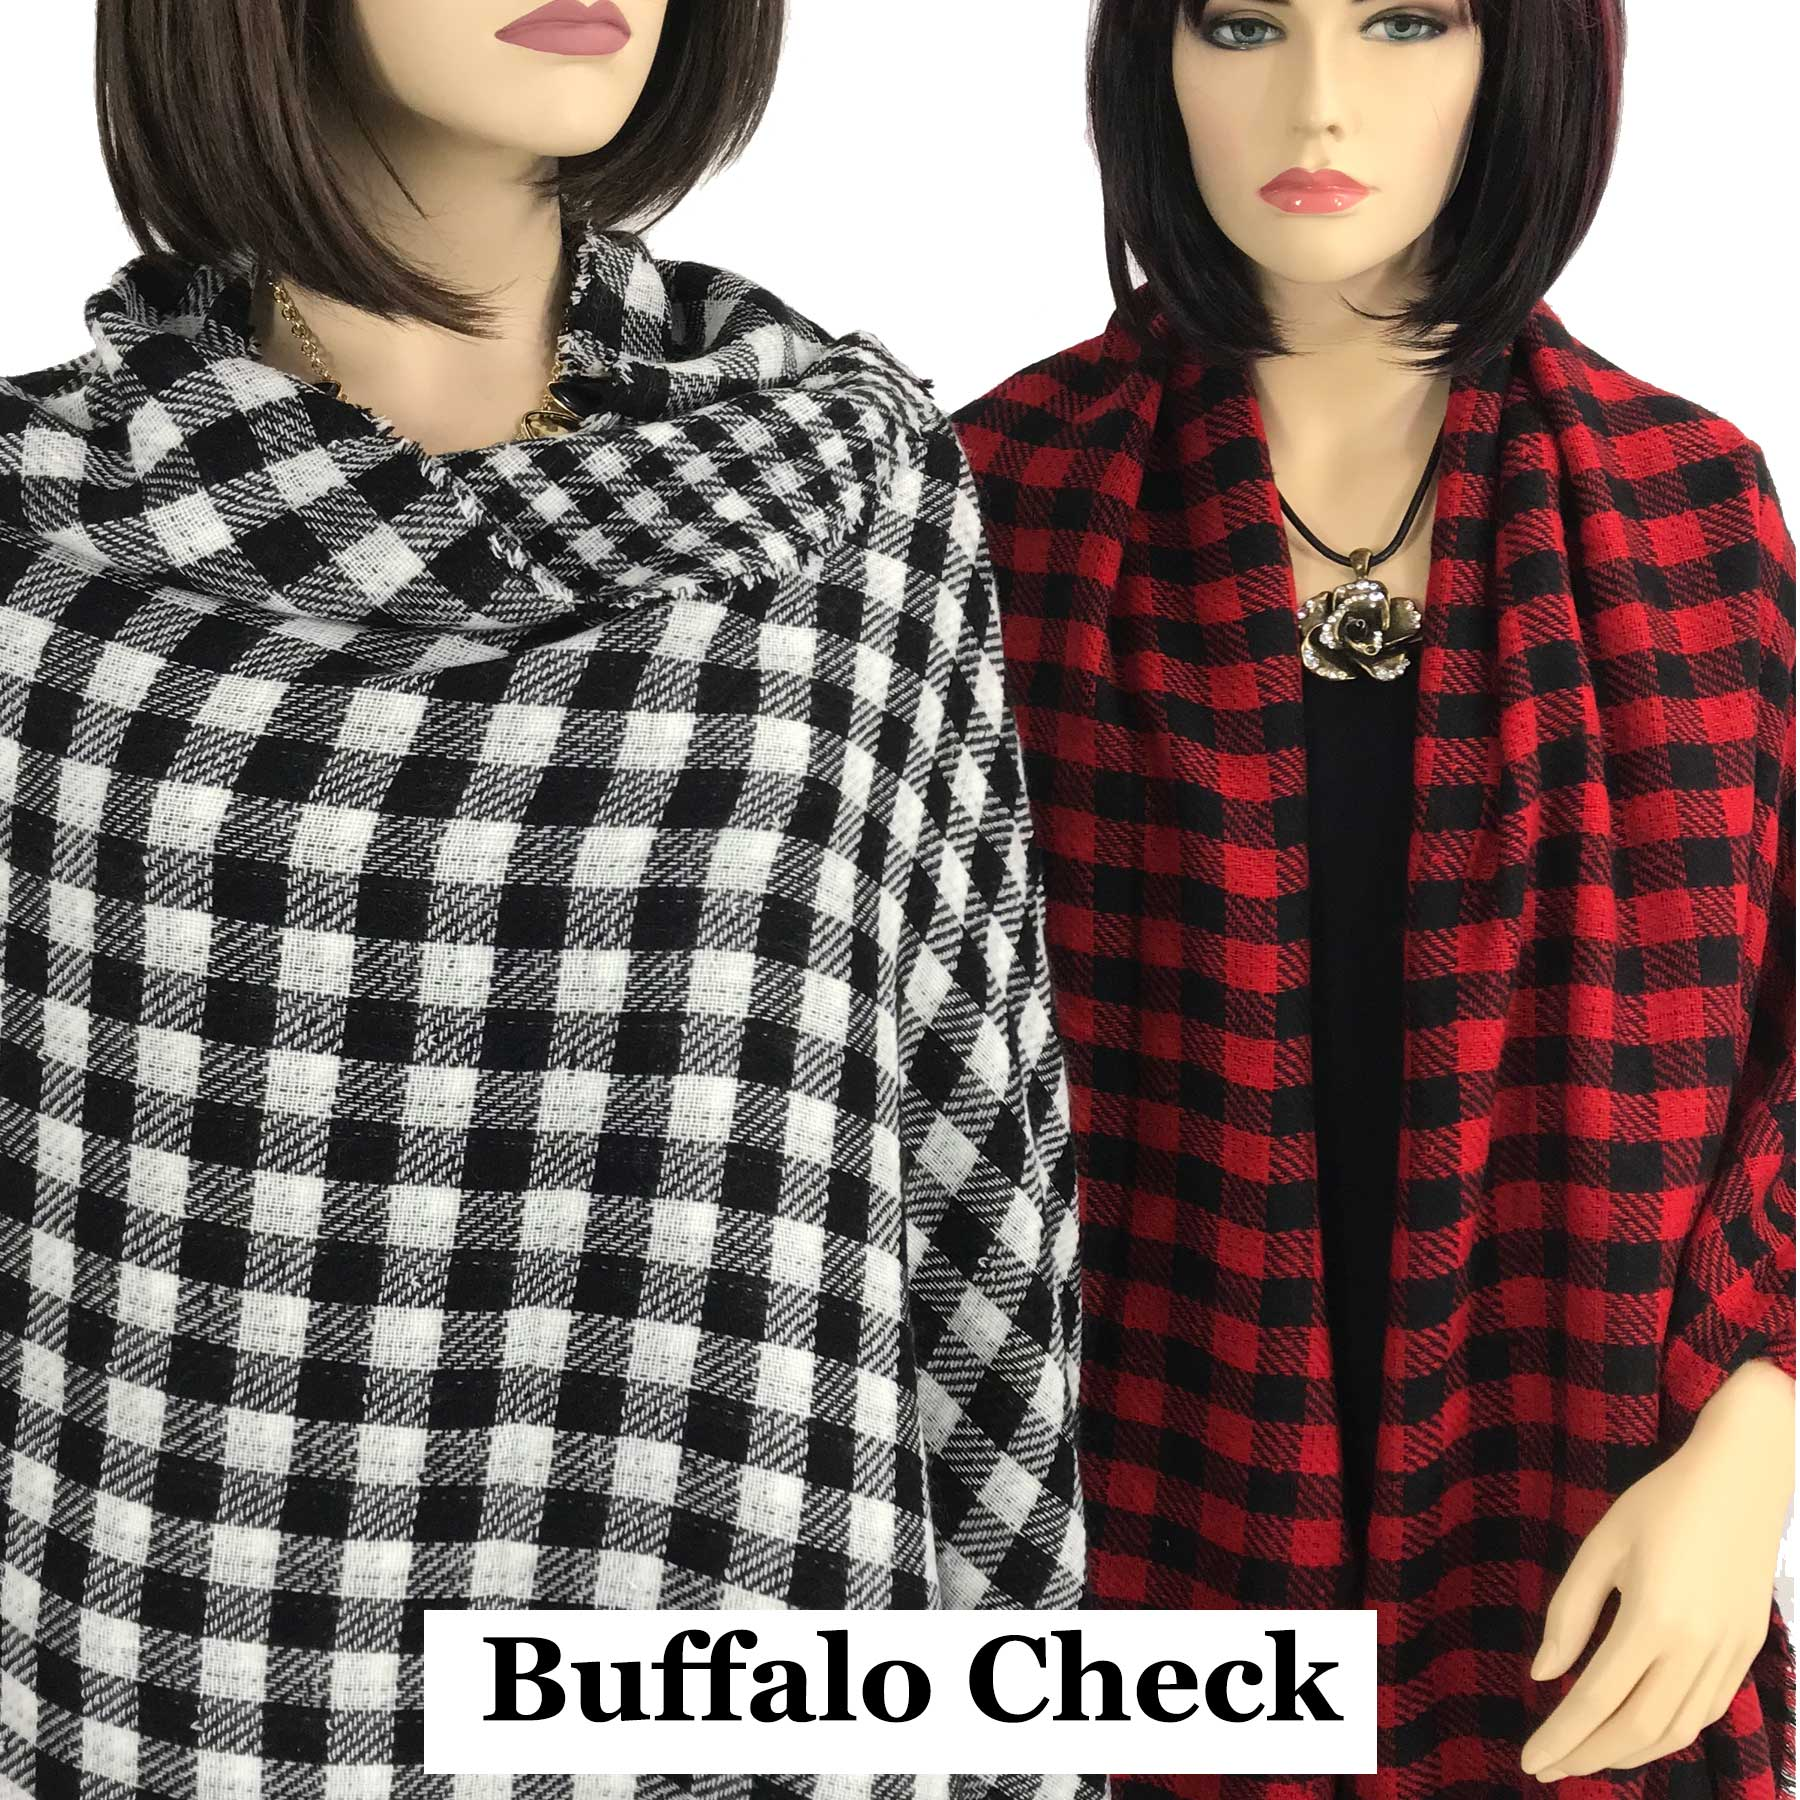 Oblong Scarves/Shawls - Buffalo Check 9088